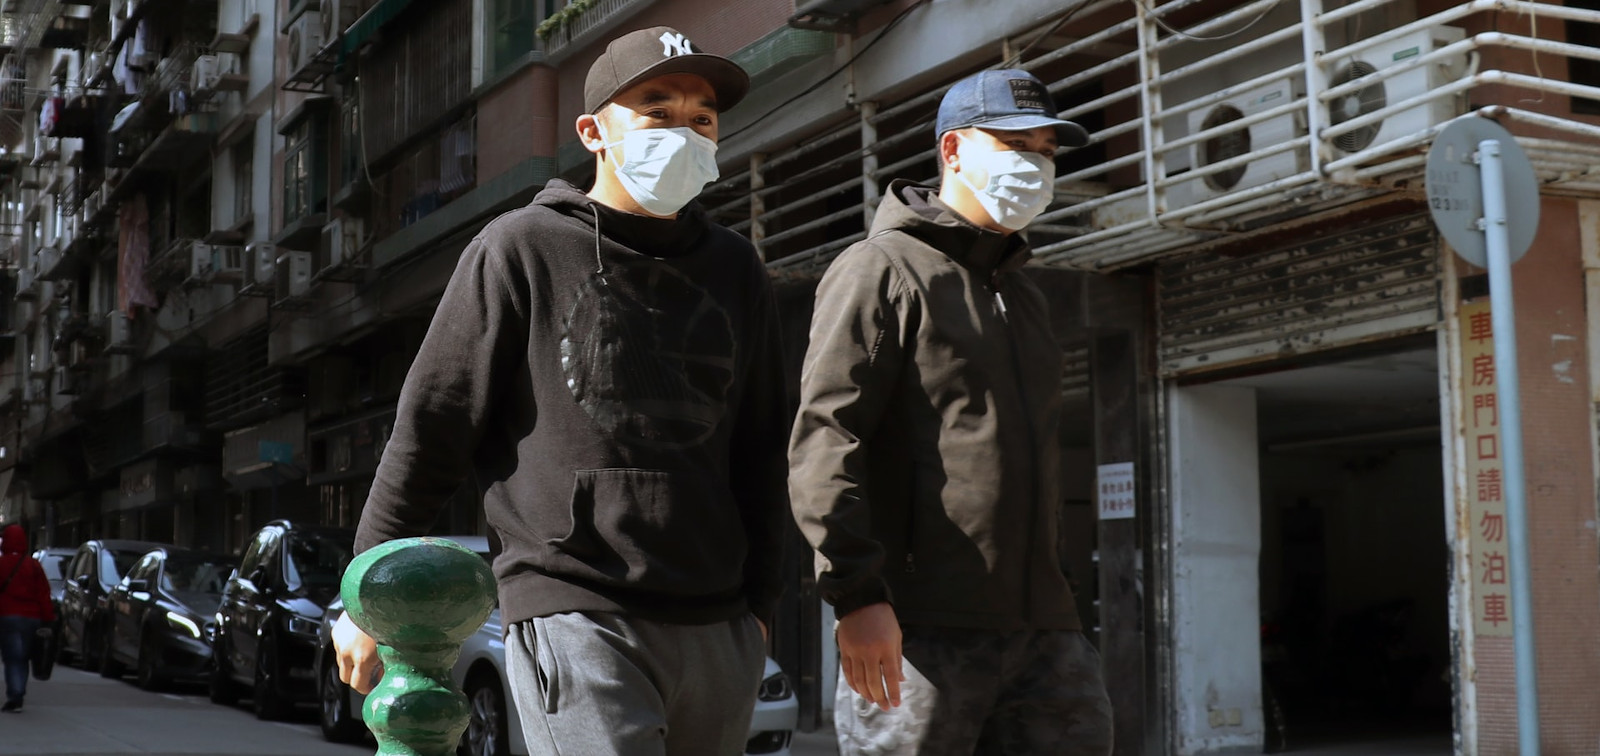 Men wearing mask due to coronavirus